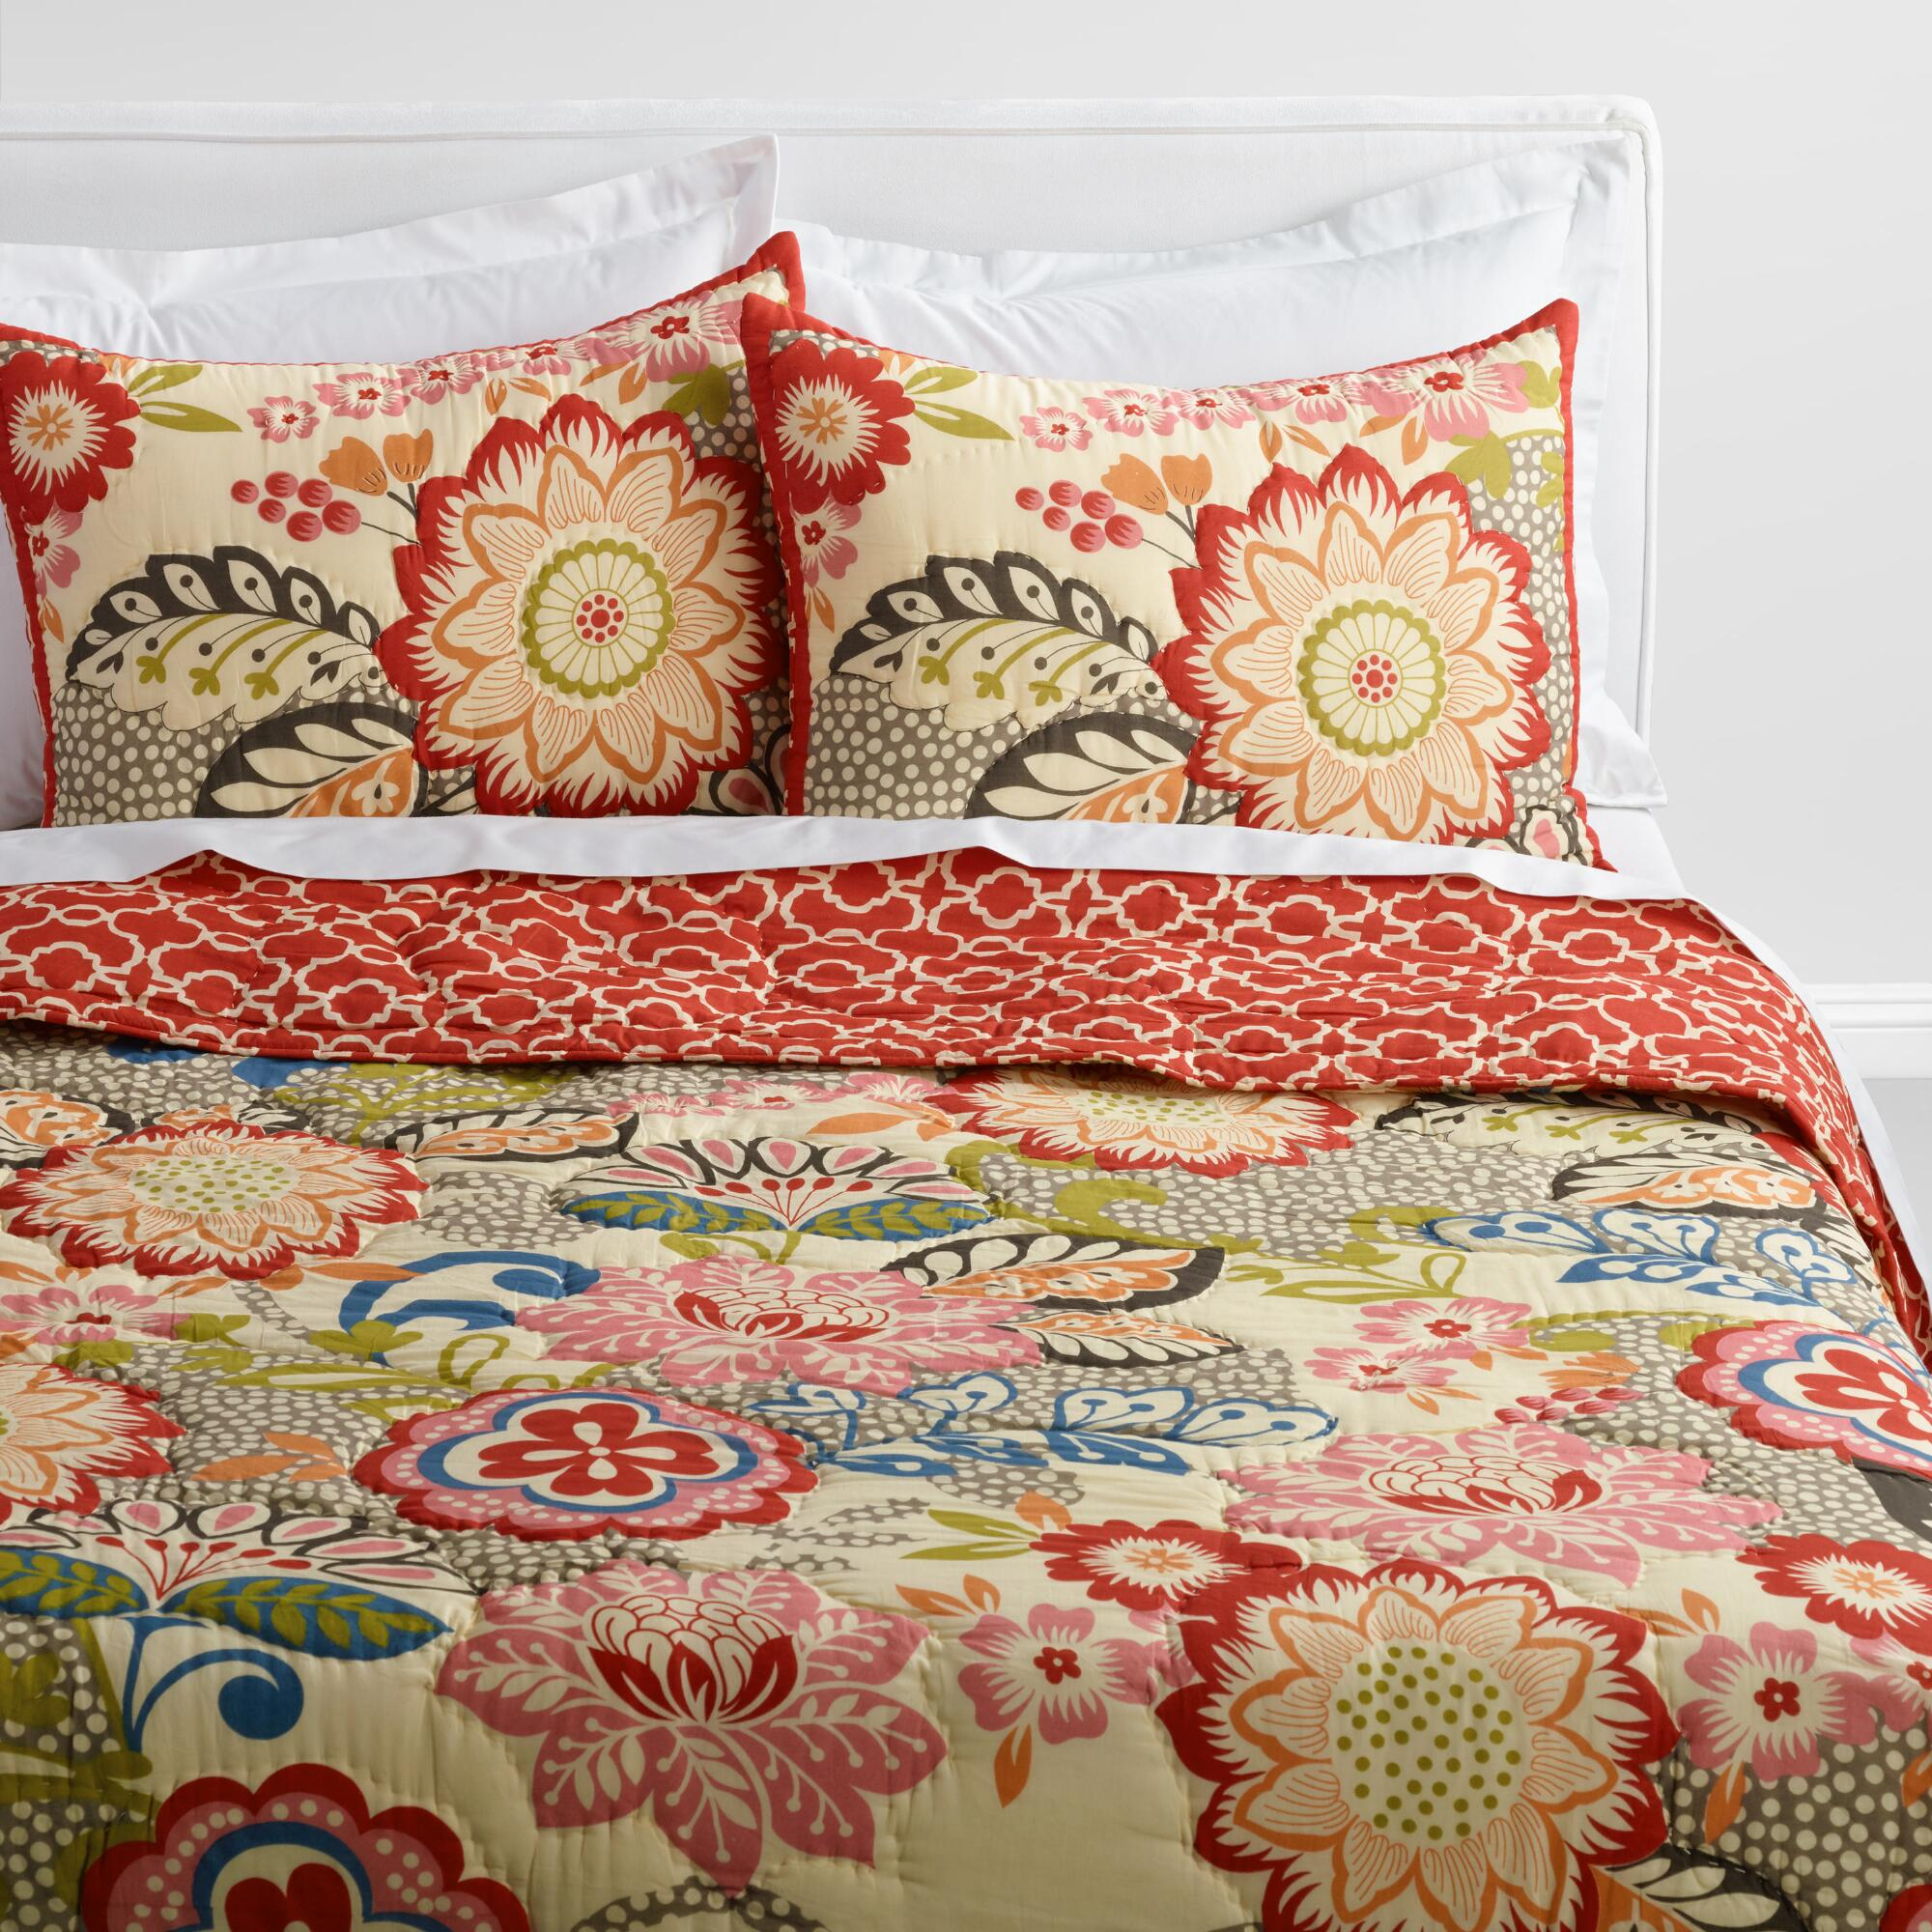 Floral and Geometric Darby Reversible Quilt | World Market : quilts - Adamdwight.com